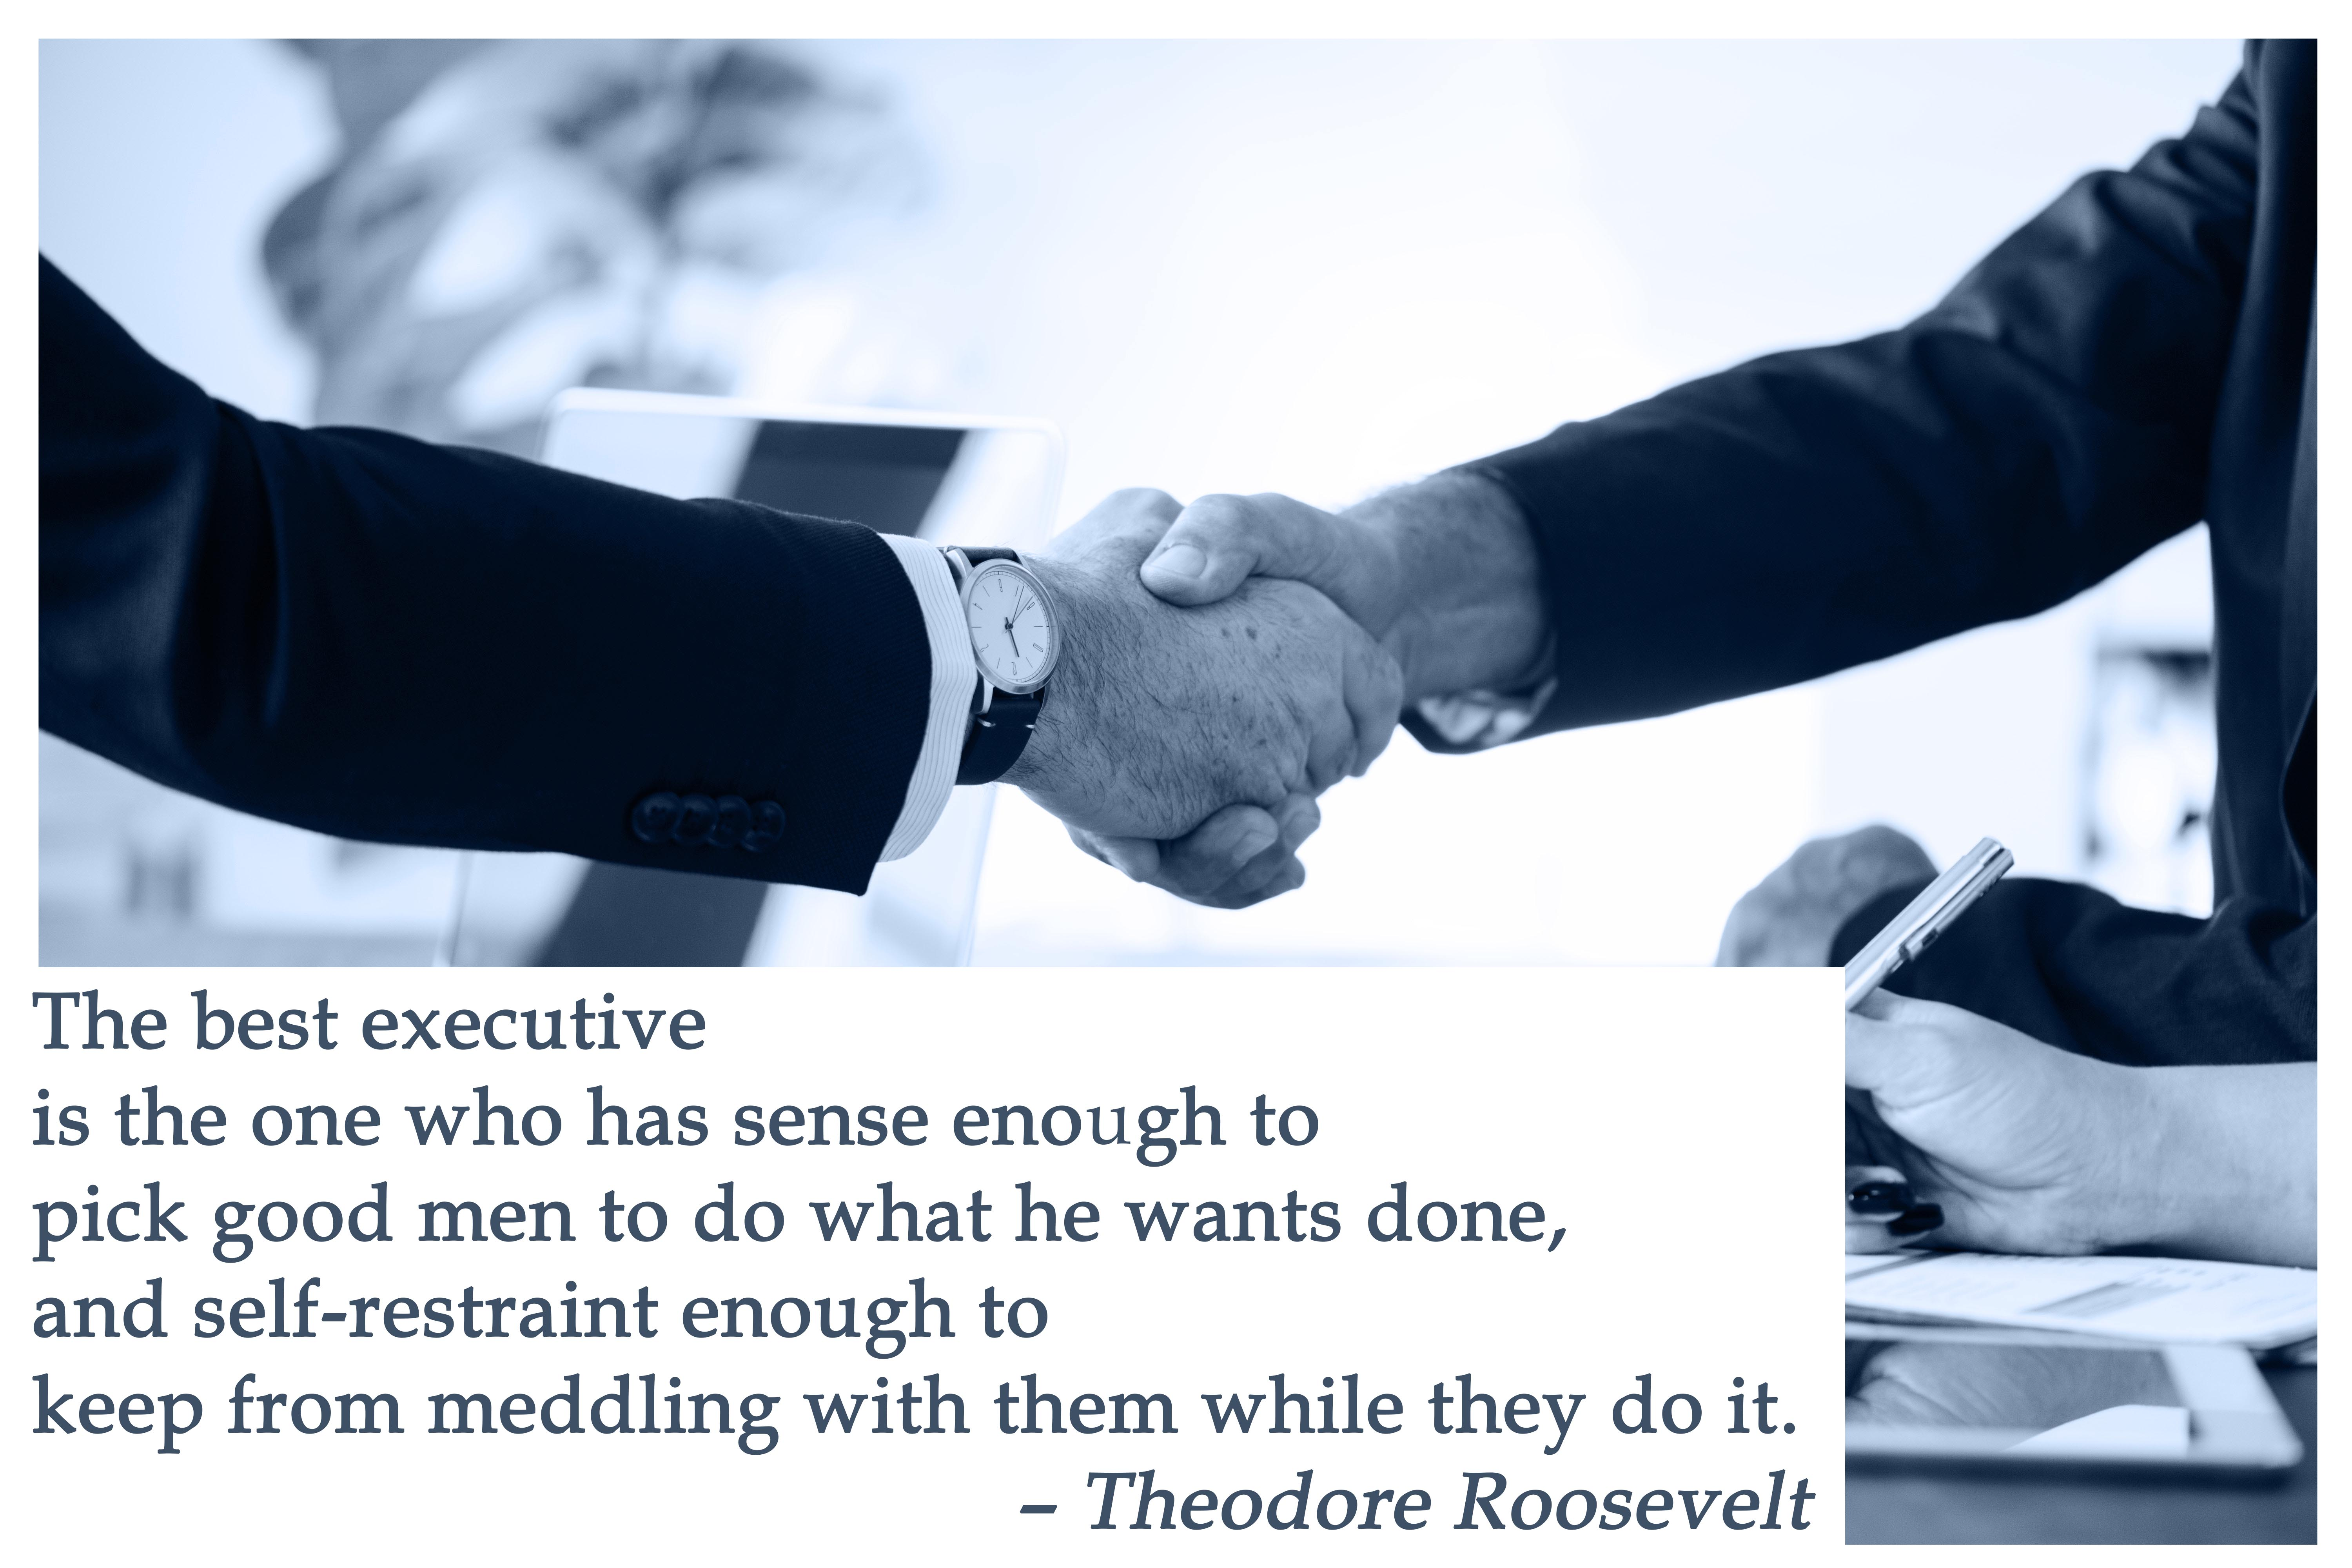 The best executive is the one who has sense enough to pick good men to do what he wants done, and self-restraint enough to keep from meddling with them while they do it. - Theodore Roosevelt